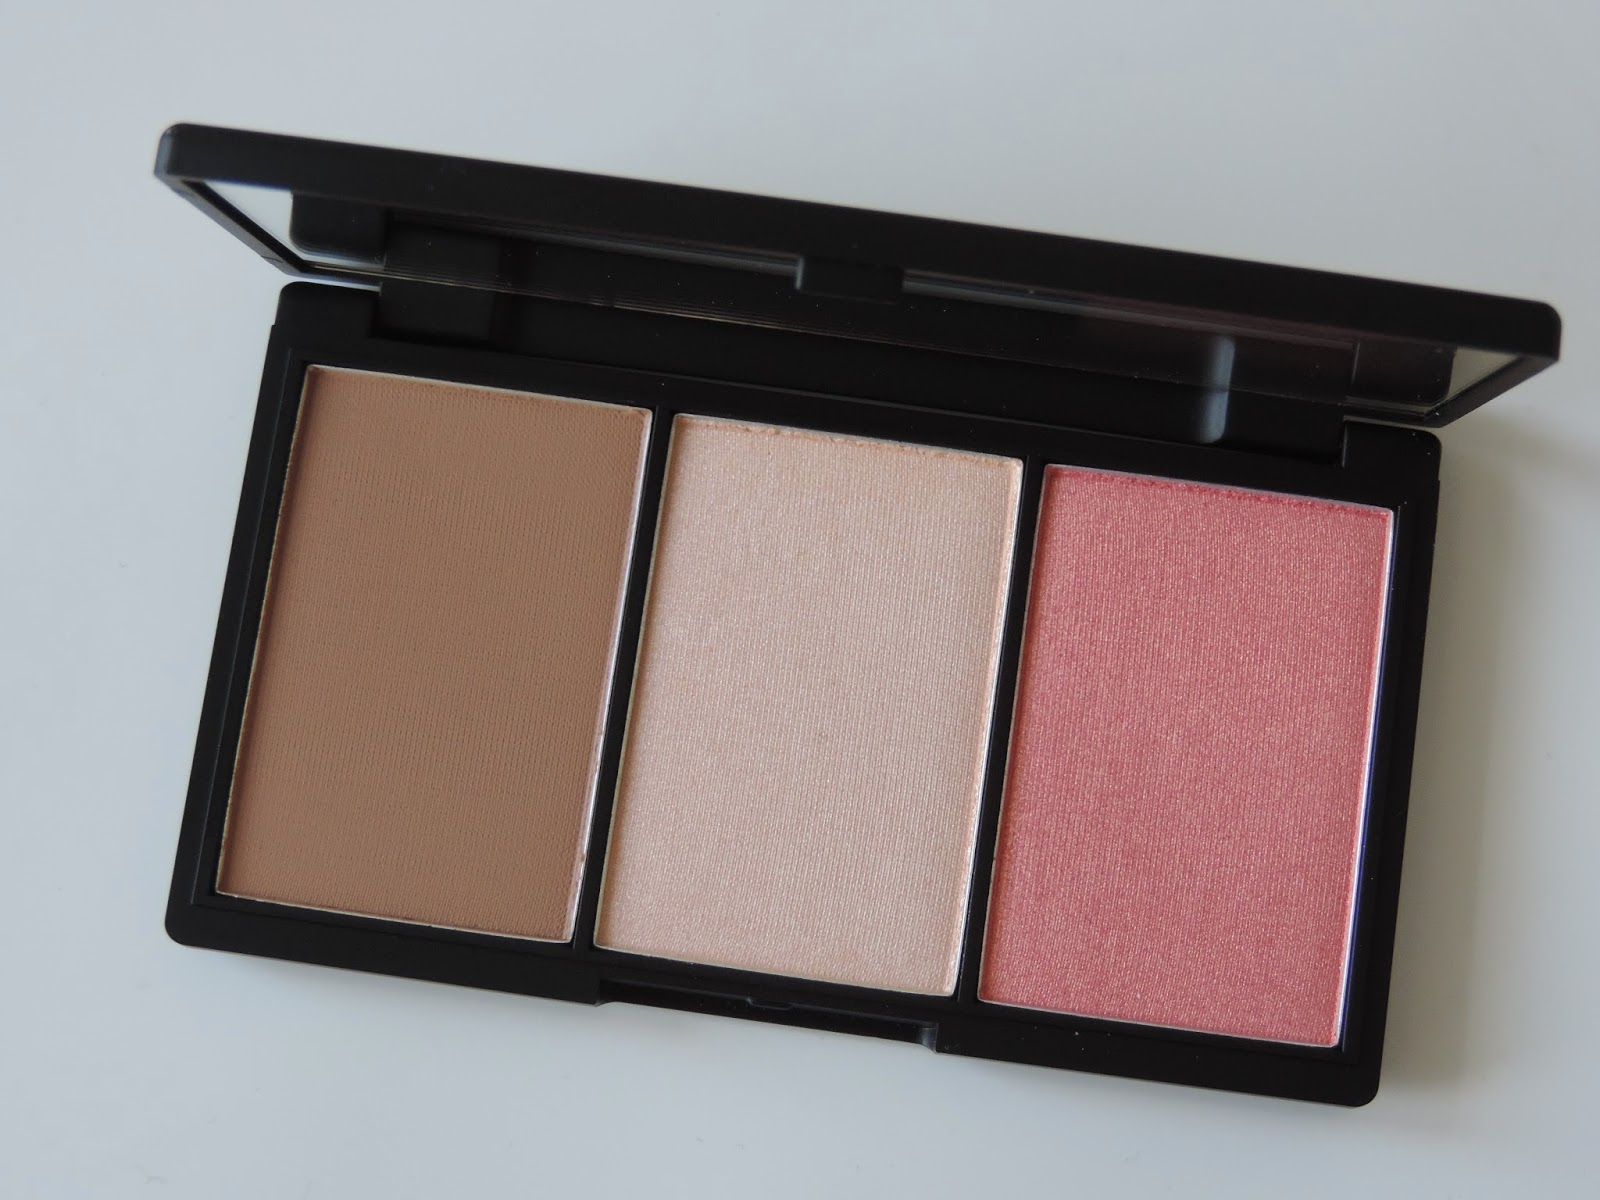 Sleek Makeup Face Form Contour & Blush Palette